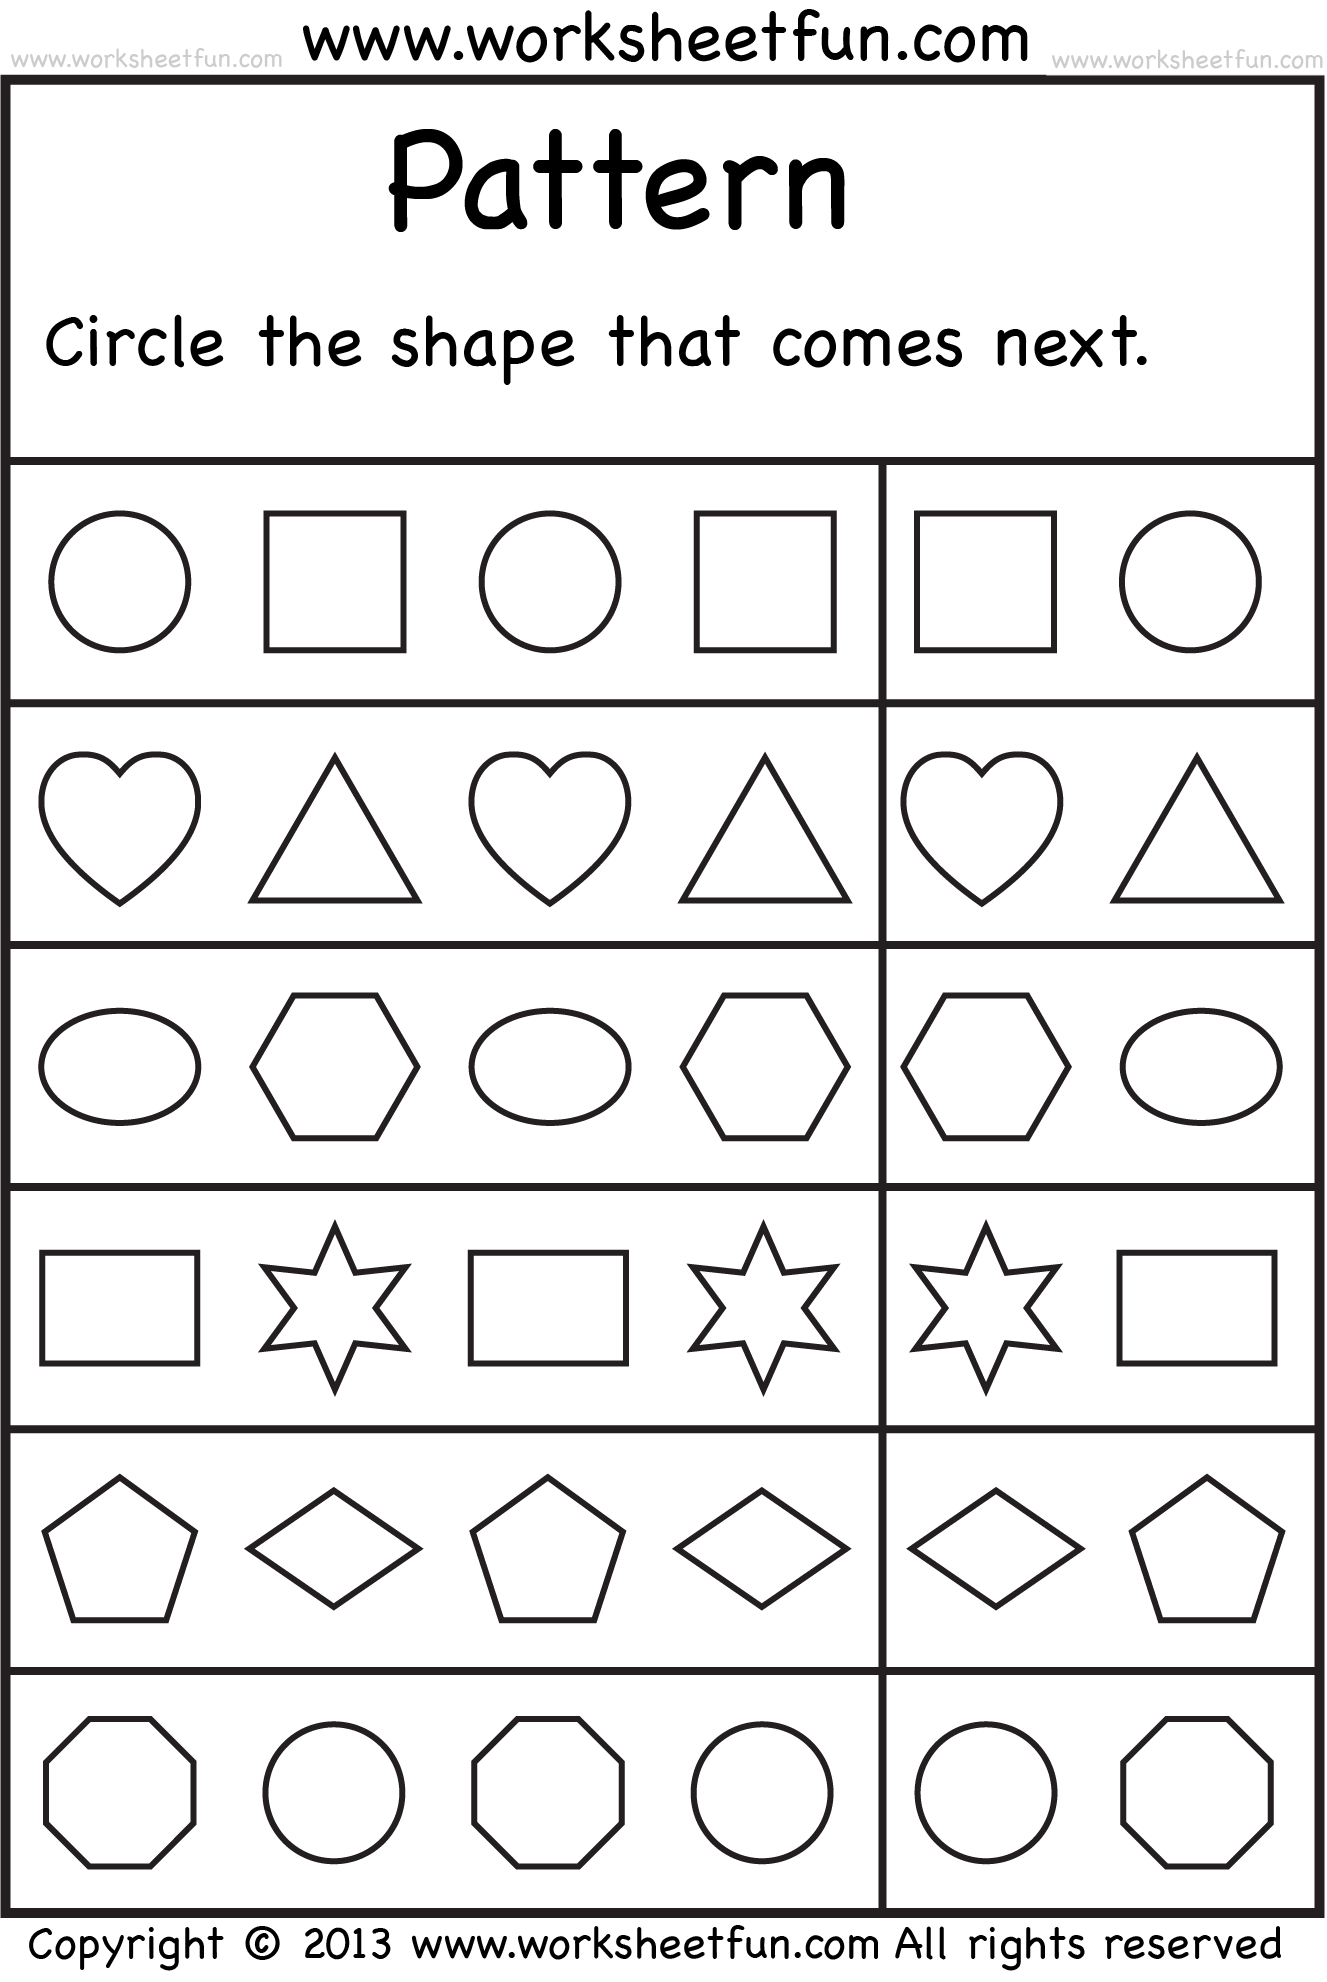 Weirdmailus  Outstanding  Images About School Worksheets On Pinterest  Number Words  With Gorgeous  Images About School Worksheets On Pinterest  Number Words Alphabet Worksheets And Free Printable Kindergarten Worksheets With Enchanting Citizenship Worksheet Also Reflection Translation Rotation Worksheet In Addition Insanity Worksheet And Subtracting Integers Word Problems Worksheet As Well As Investment Property Worksheet Additionally Kindergarten Handwriting Worksheets Free From Pinterestcom With Weirdmailus  Gorgeous  Images About School Worksheets On Pinterest  Number Words  With Enchanting  Images About School Worksheets On Pinterest  Number Words Alphabet Worksheets And Free Printable Kindergarten Worksheets And Outstanding Citizenship Worksheet Also Reflection Translation Rotation Worksheet In Addition Insanity Worksheet From Pinterestcom